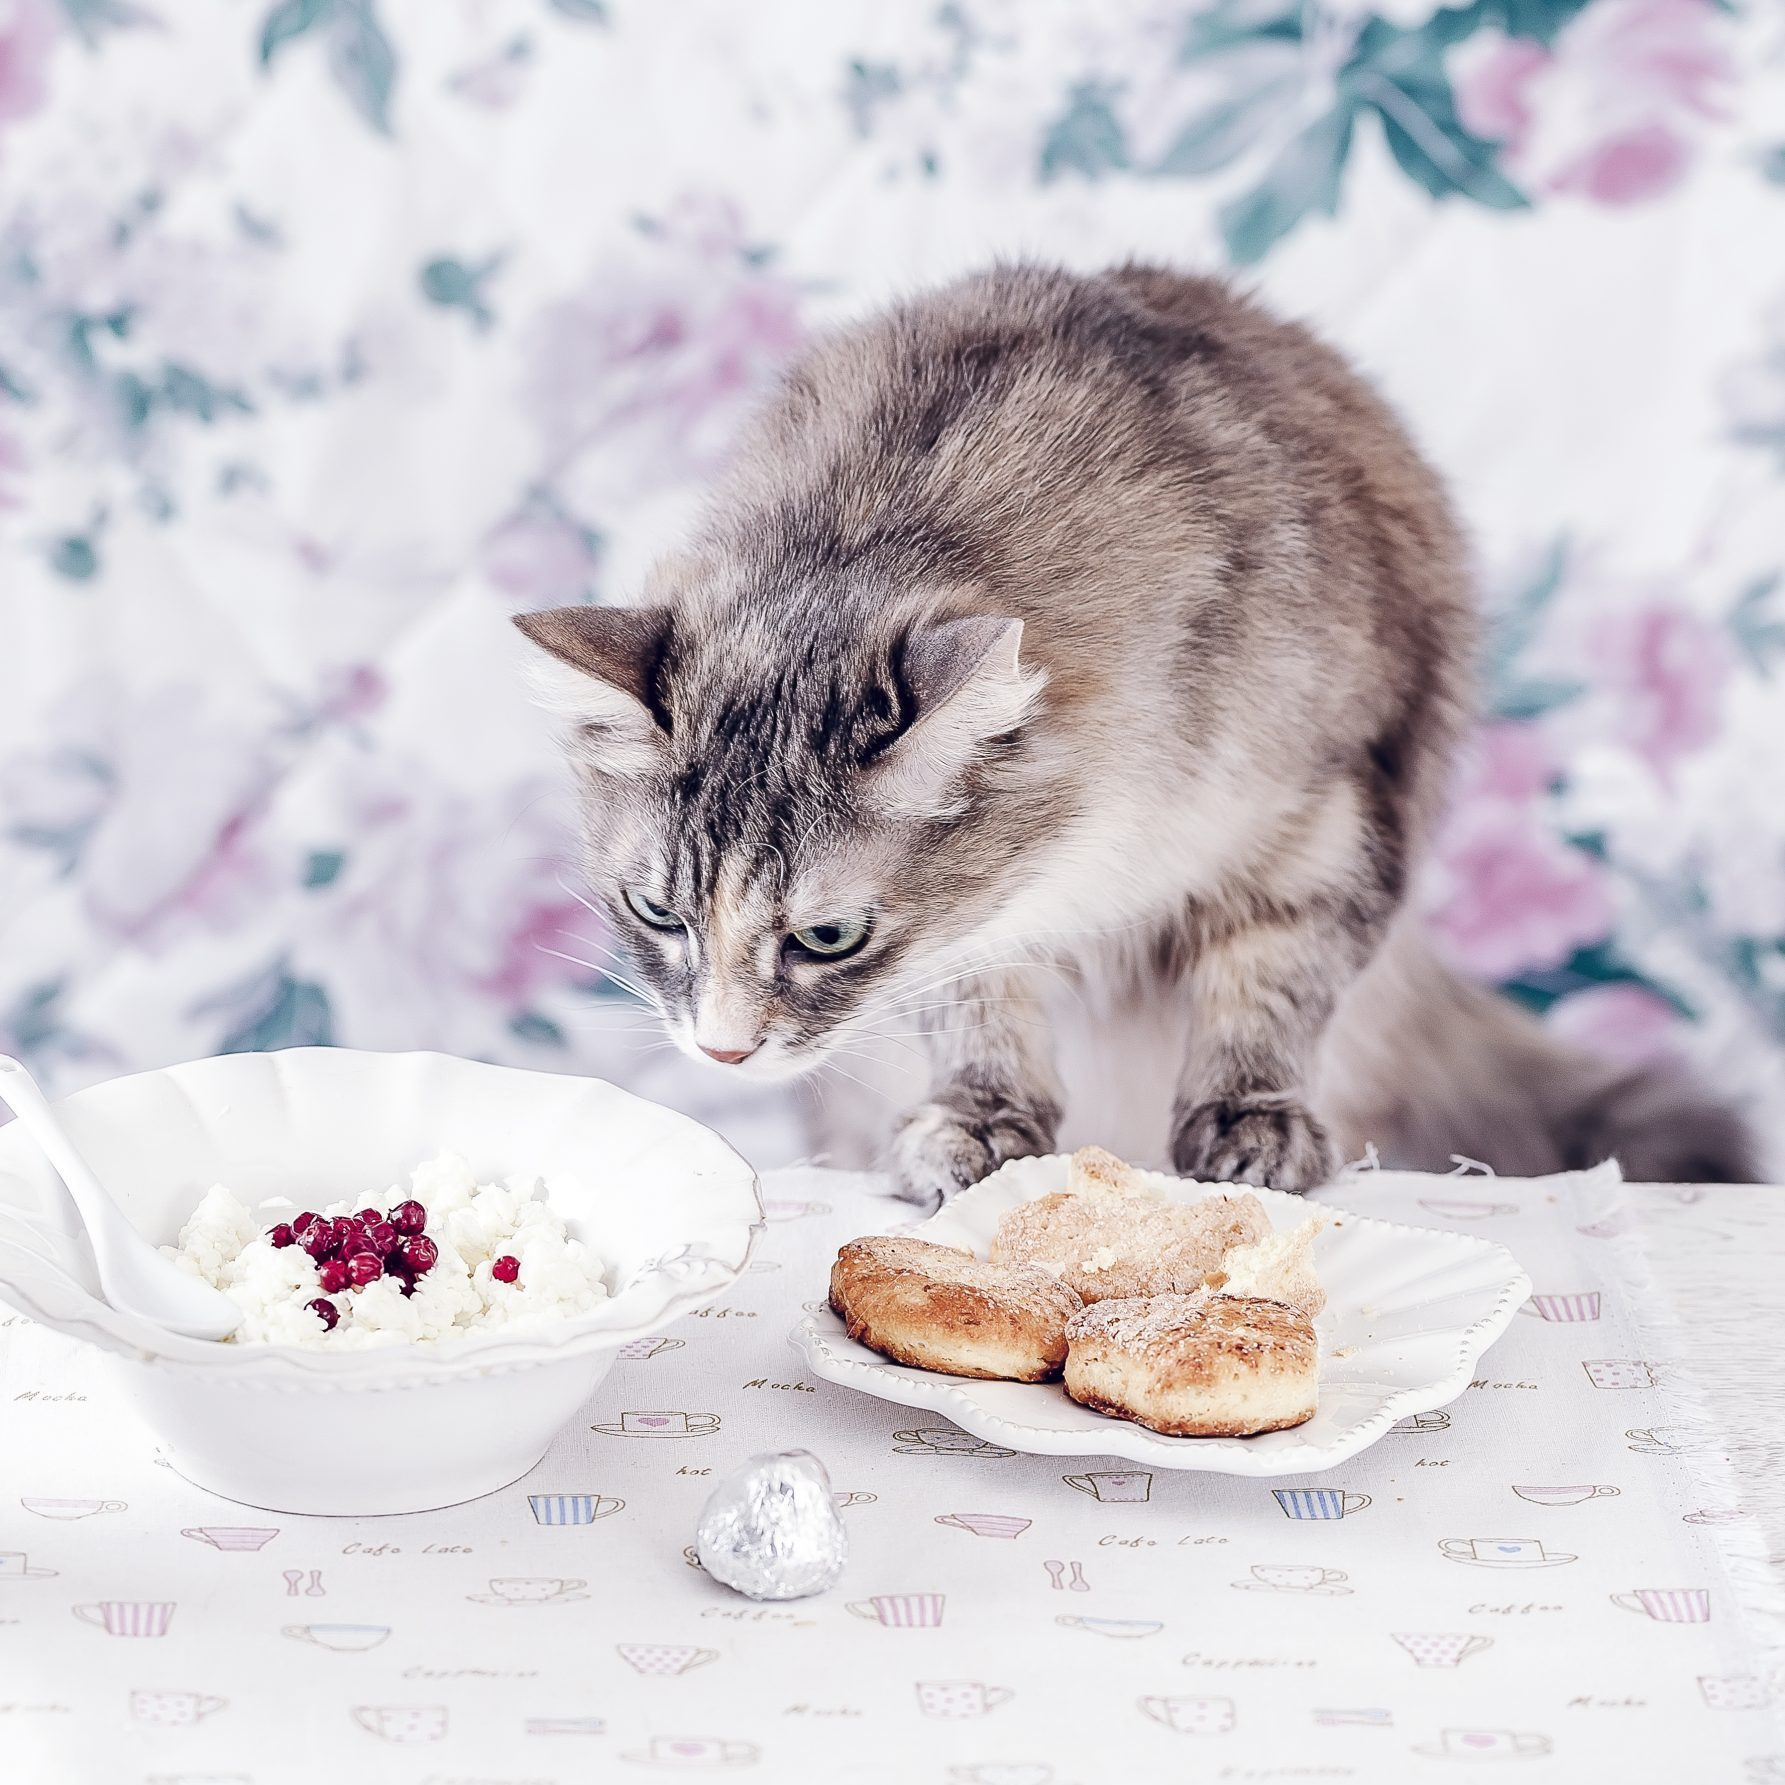 Gray Cat Breakfast on a table. Cat eats from white linen Table